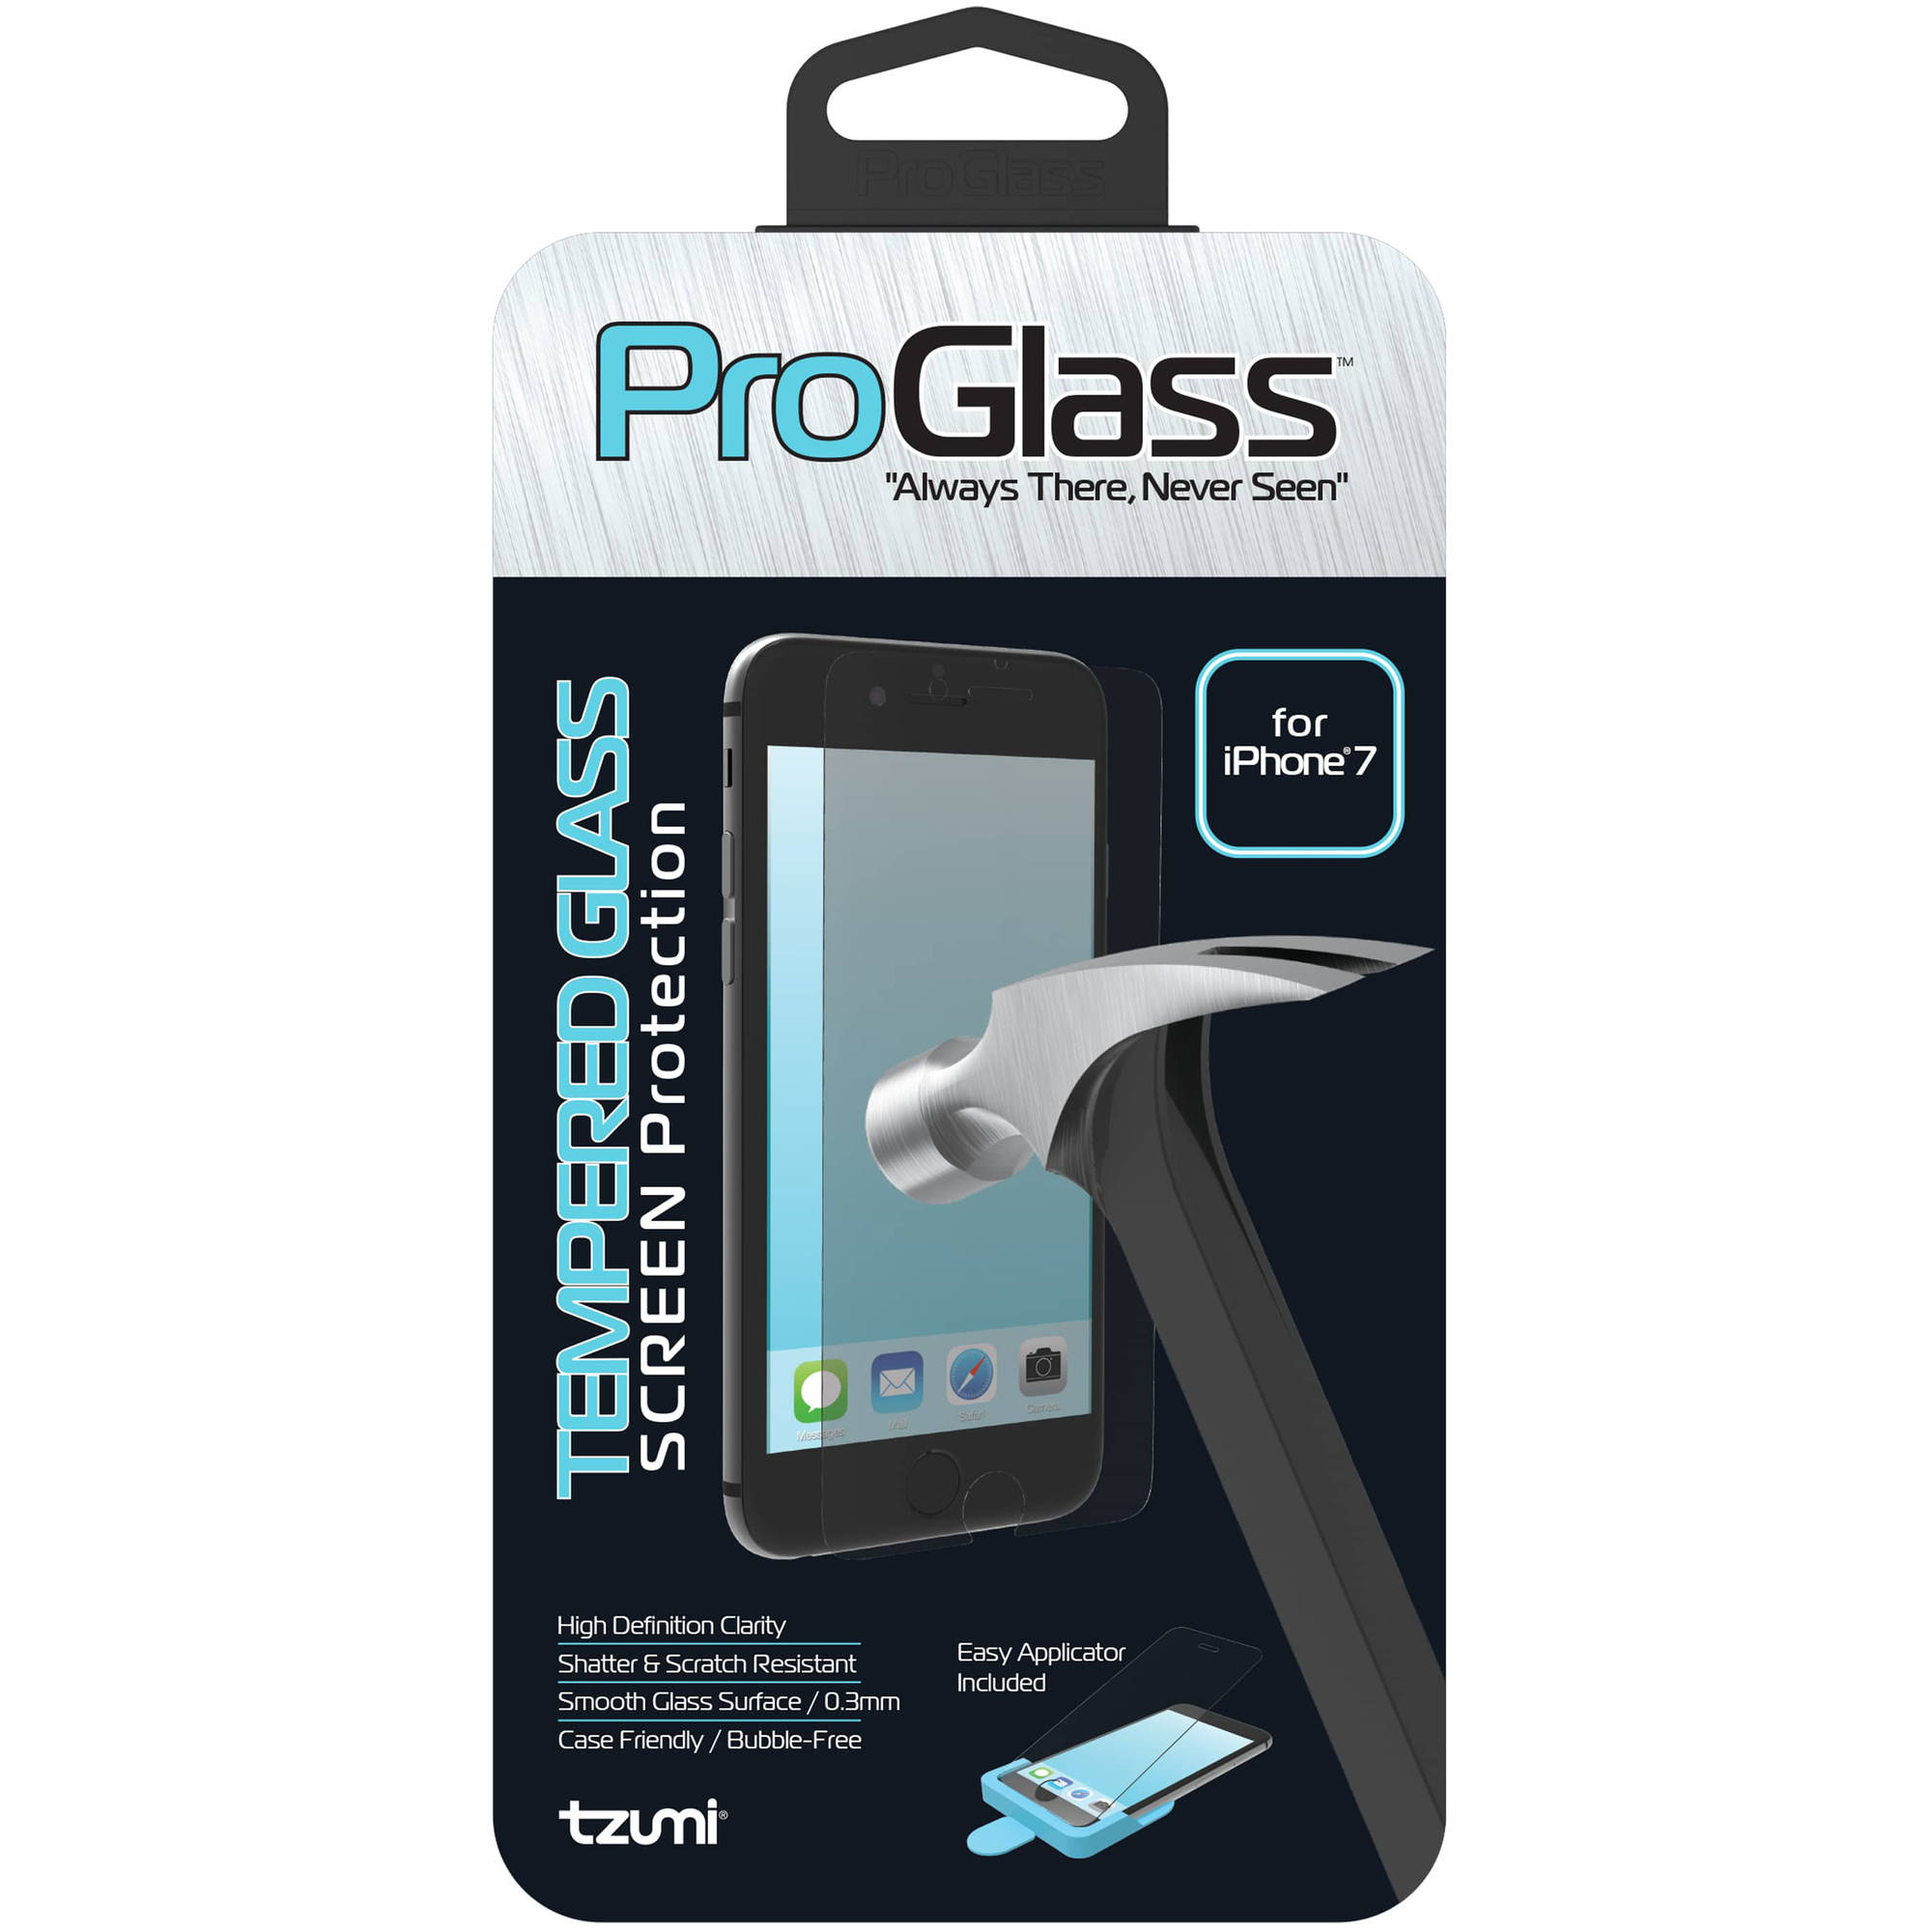 Tzumi ProGlass for iPhone 7 - Premium Tempered Glass Screen Protector with Easy Application and Cleaning Kit